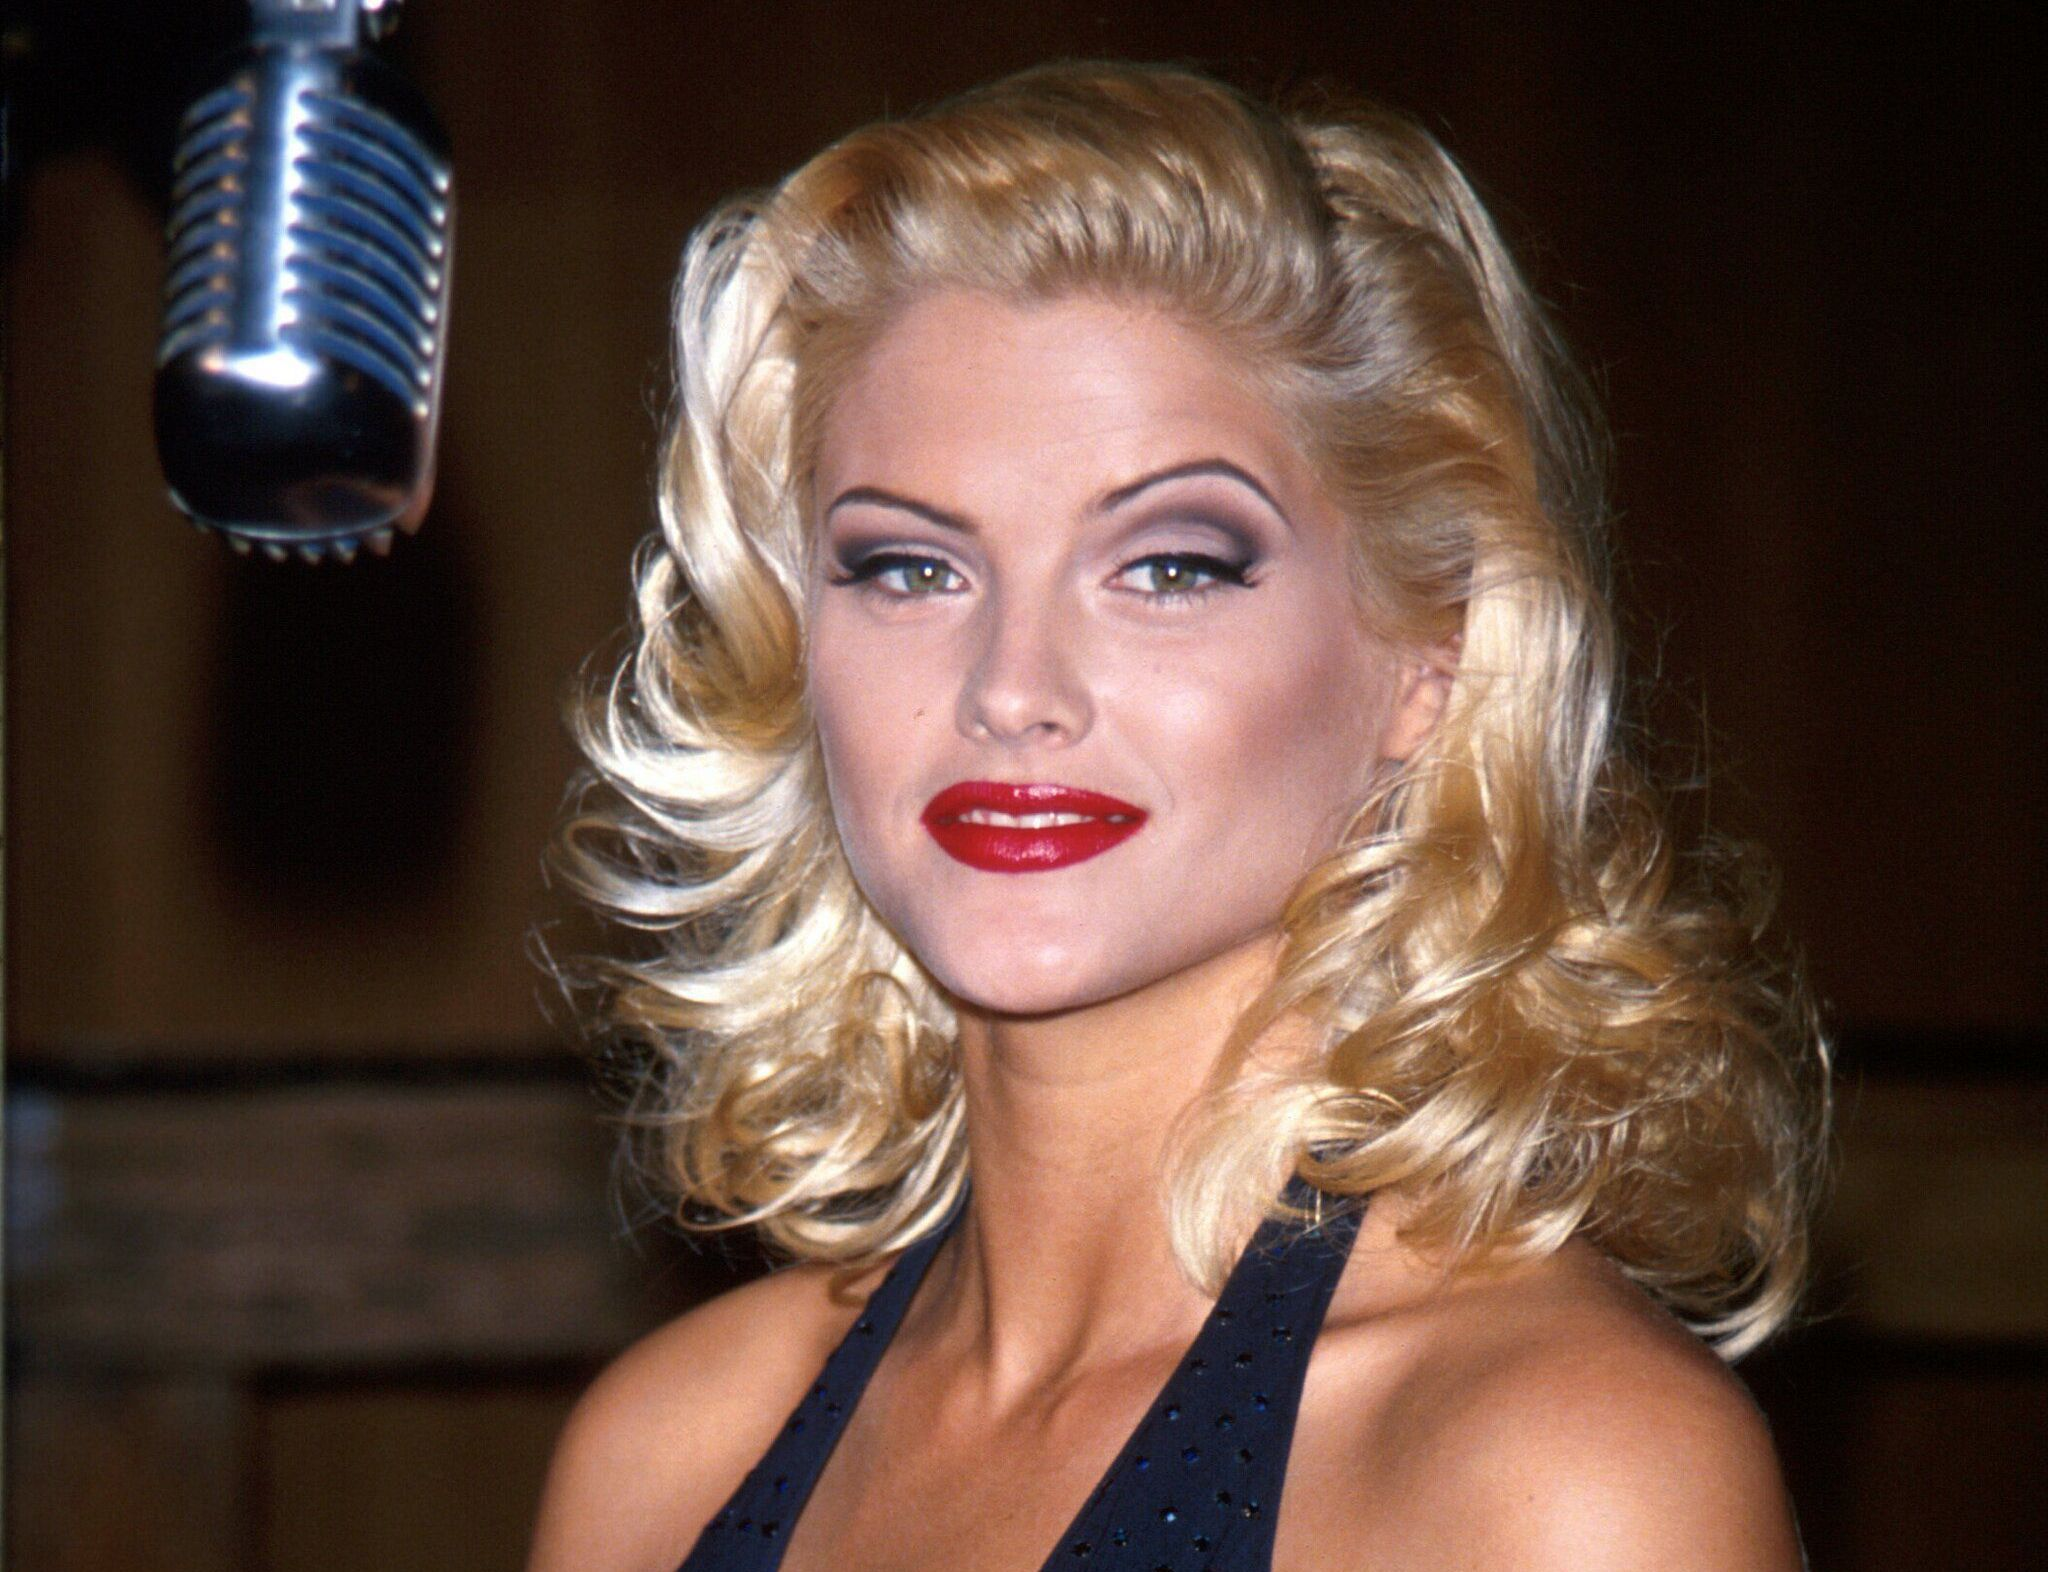 Anna Nicole Smith Tumblr